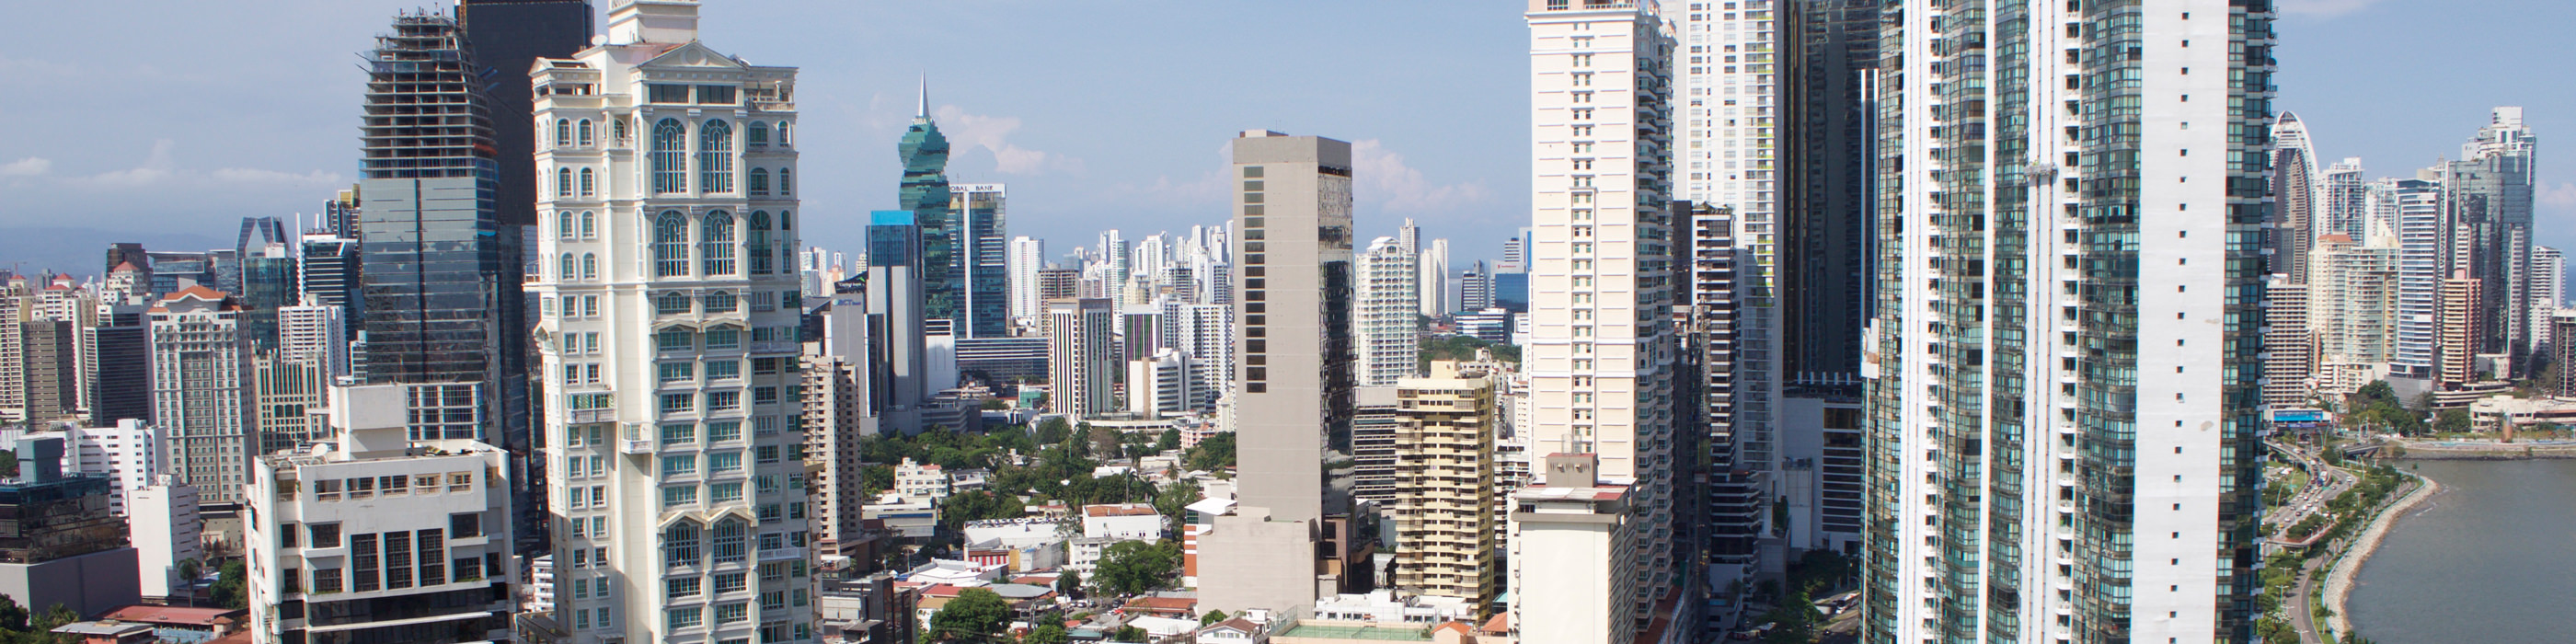 Panama_City_Panama_by_Equity.jpg